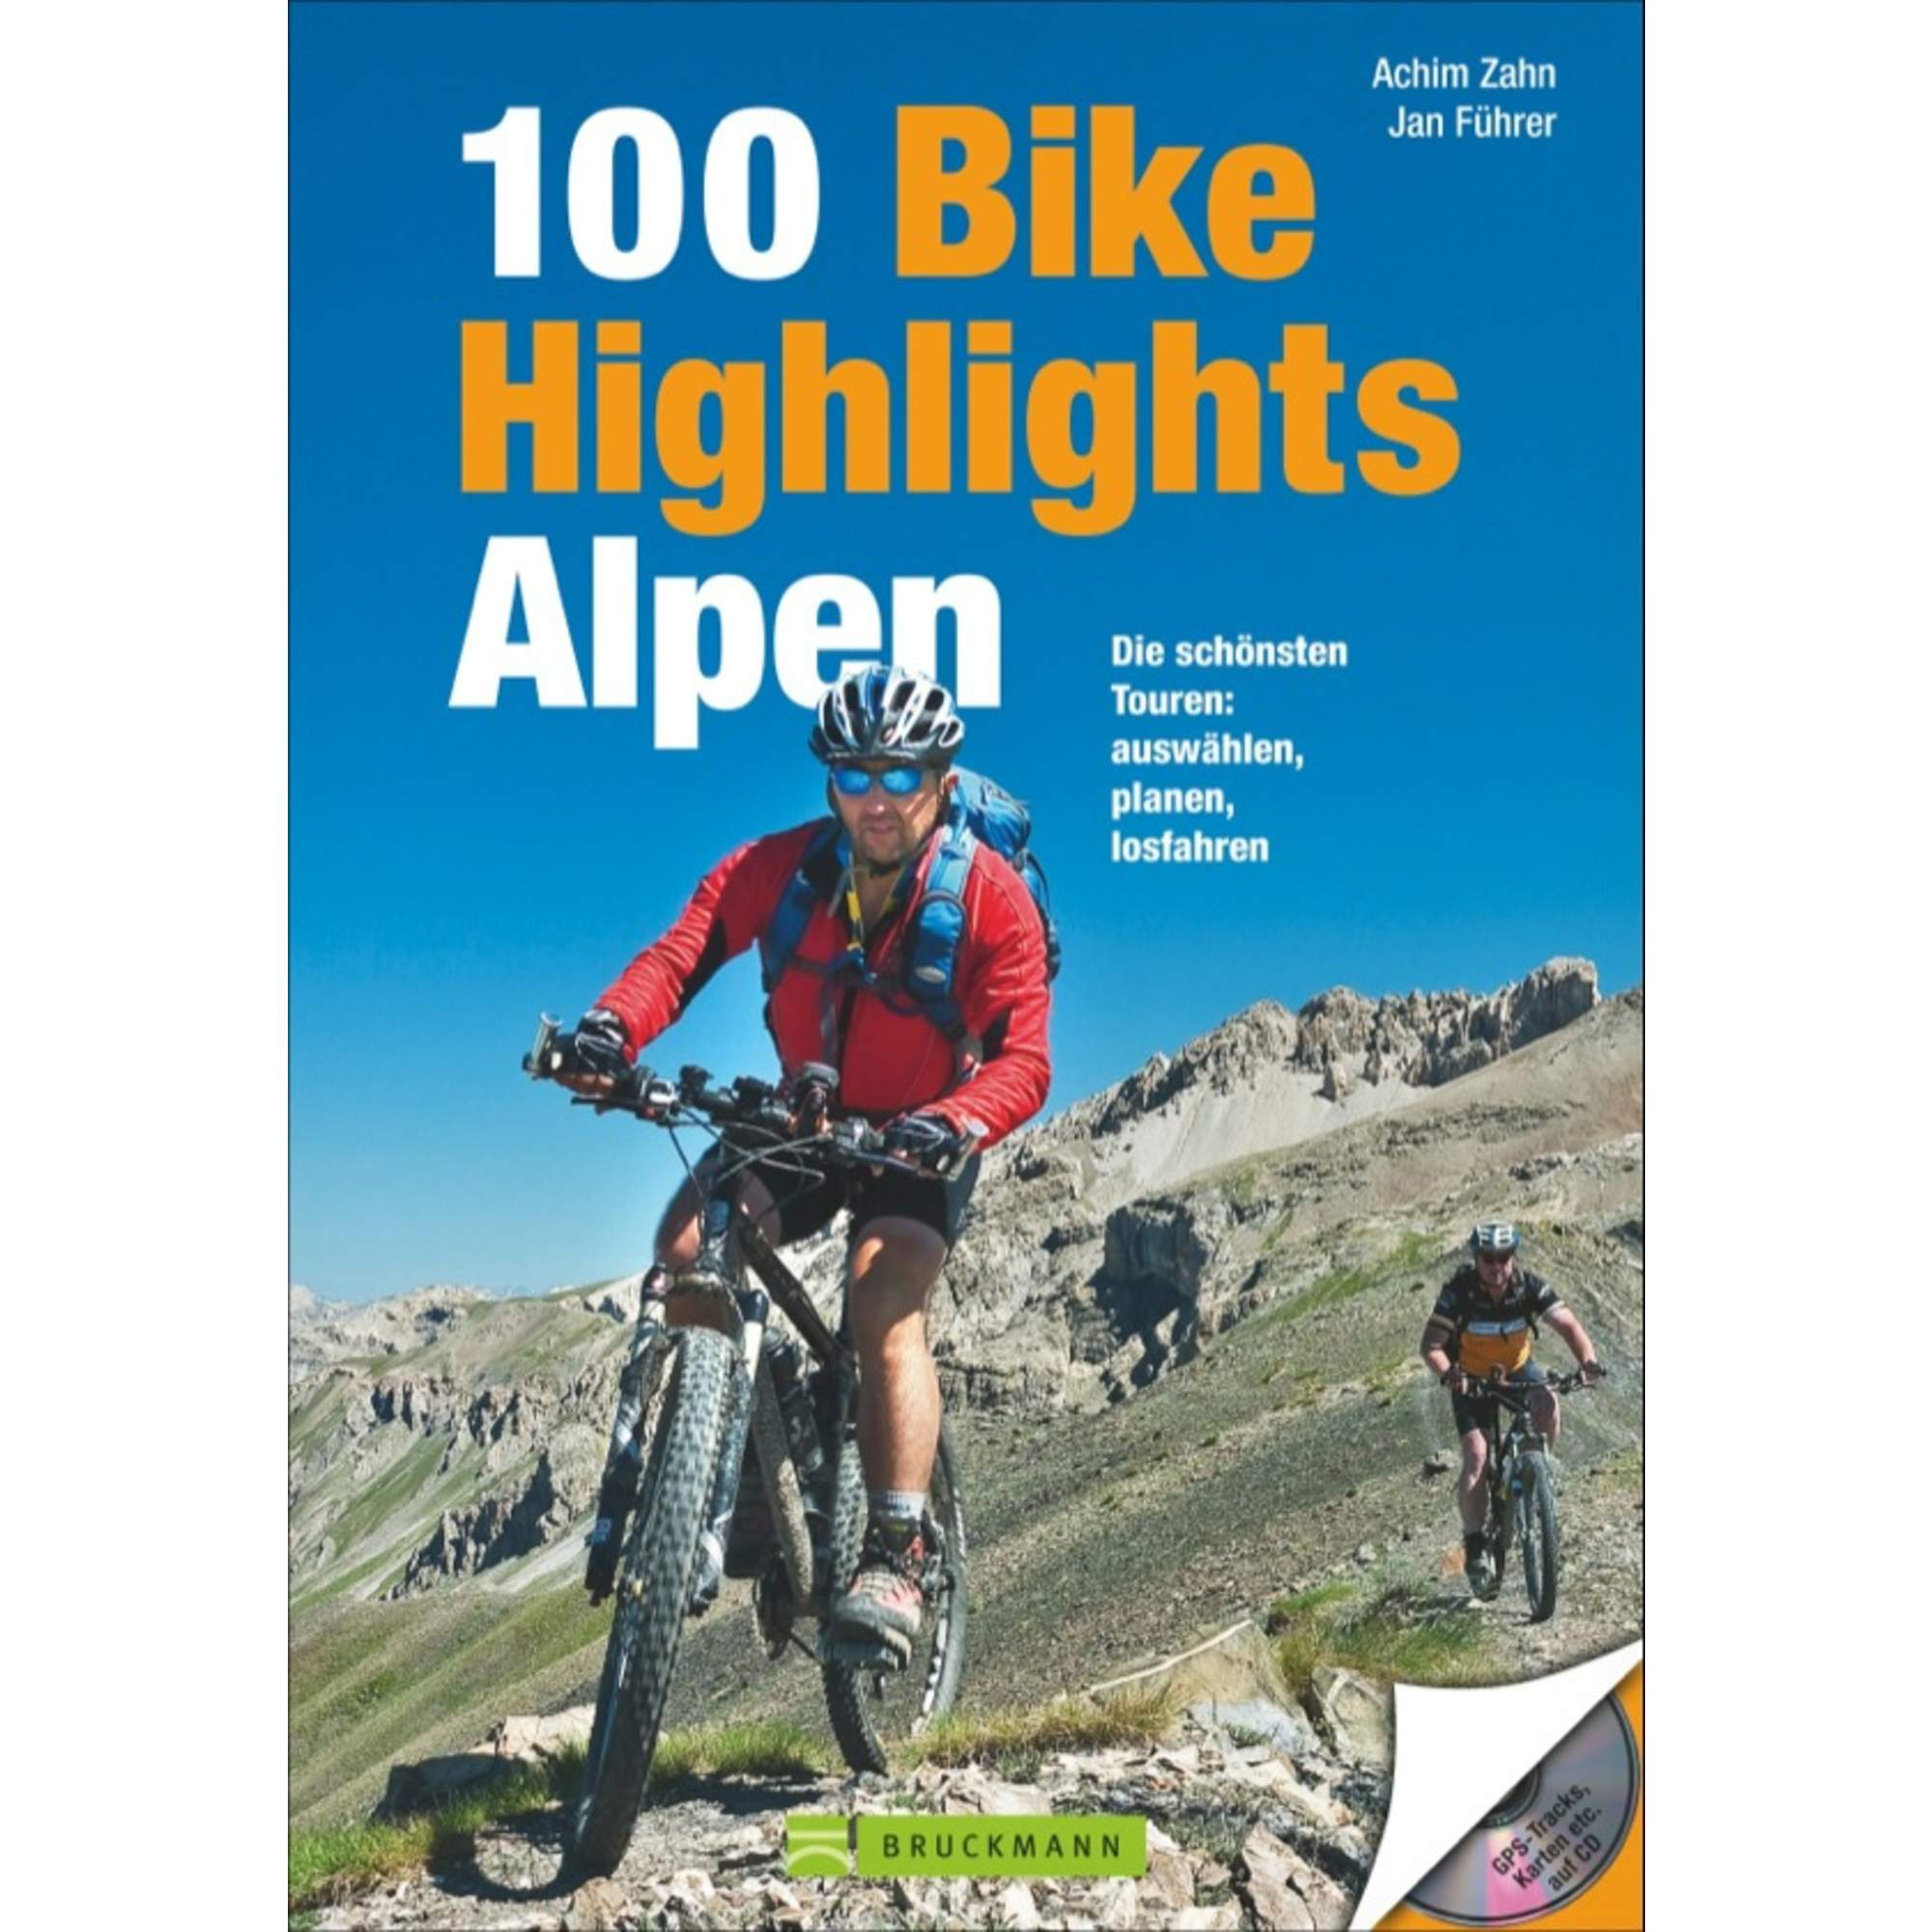 100 BIKE-HIGHLIGHTS ALPEN, 29,99 Euro